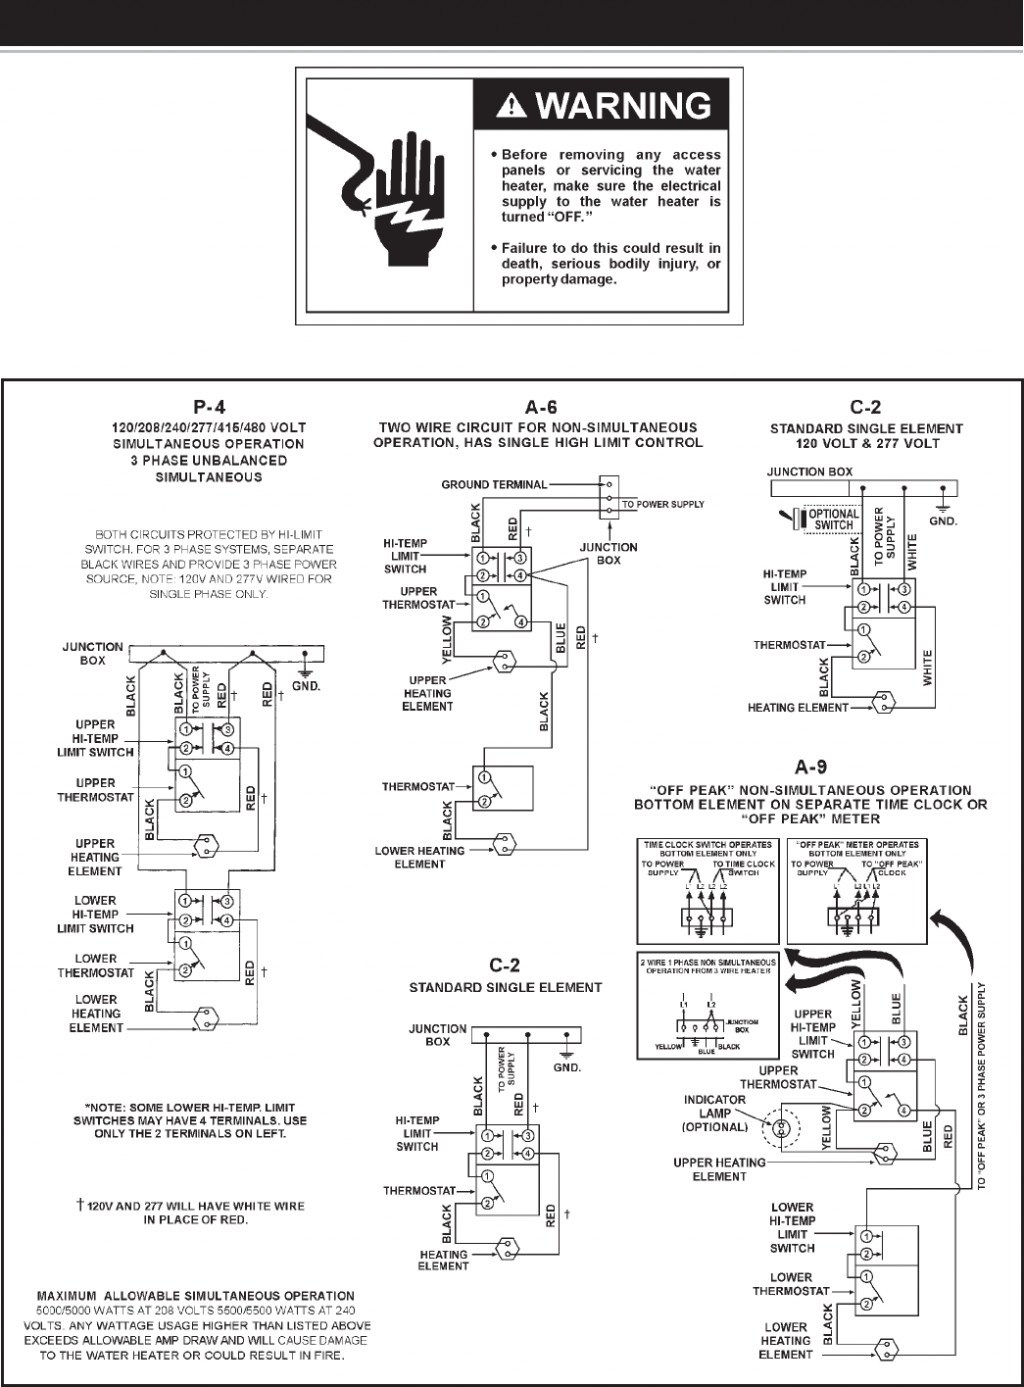 Century D1026 Wiring 220 Wiring Diagram | Wiring Diagram - Ao Smith Motor Wiring Diagram